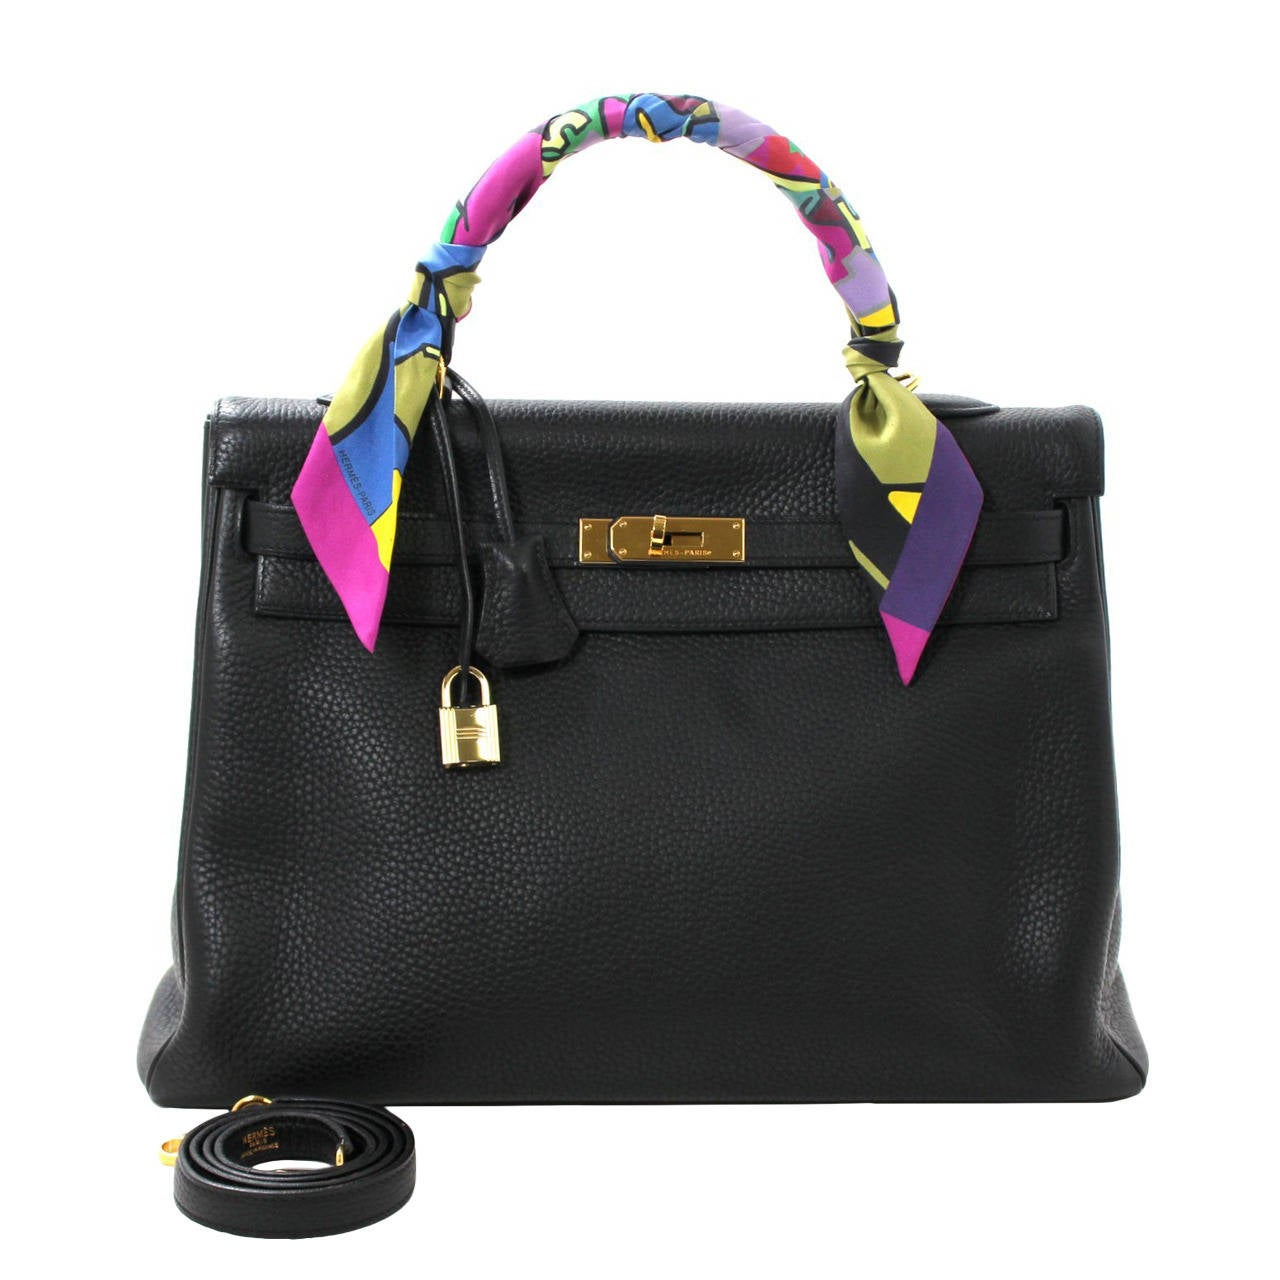 HERMES Kelly Bag- Black Clemence Leather with  Gold, 35 cm 1